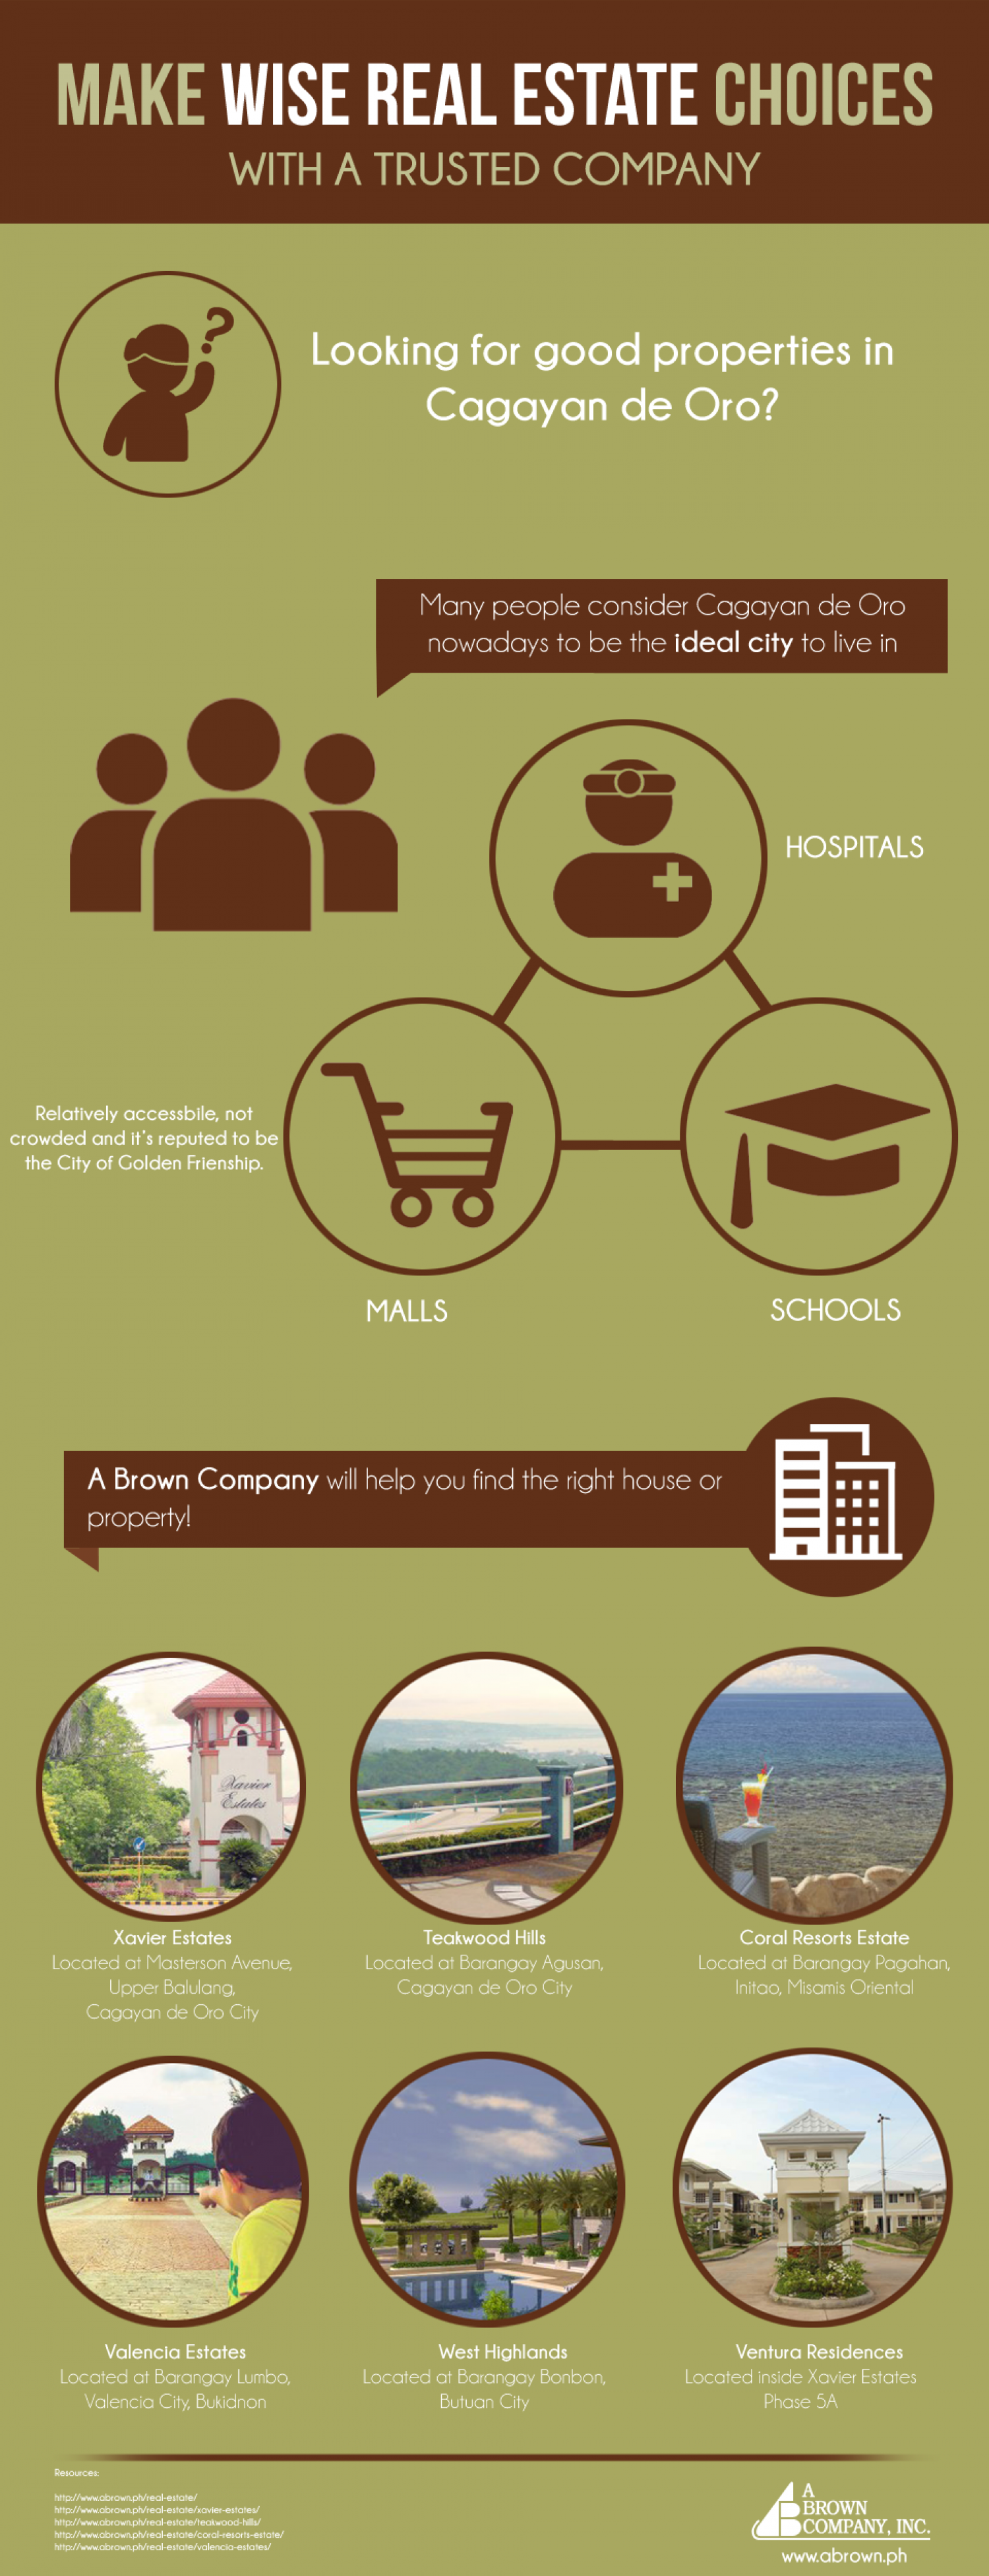 Make Wise Real Estate Choices with a Trusted Company Infographic